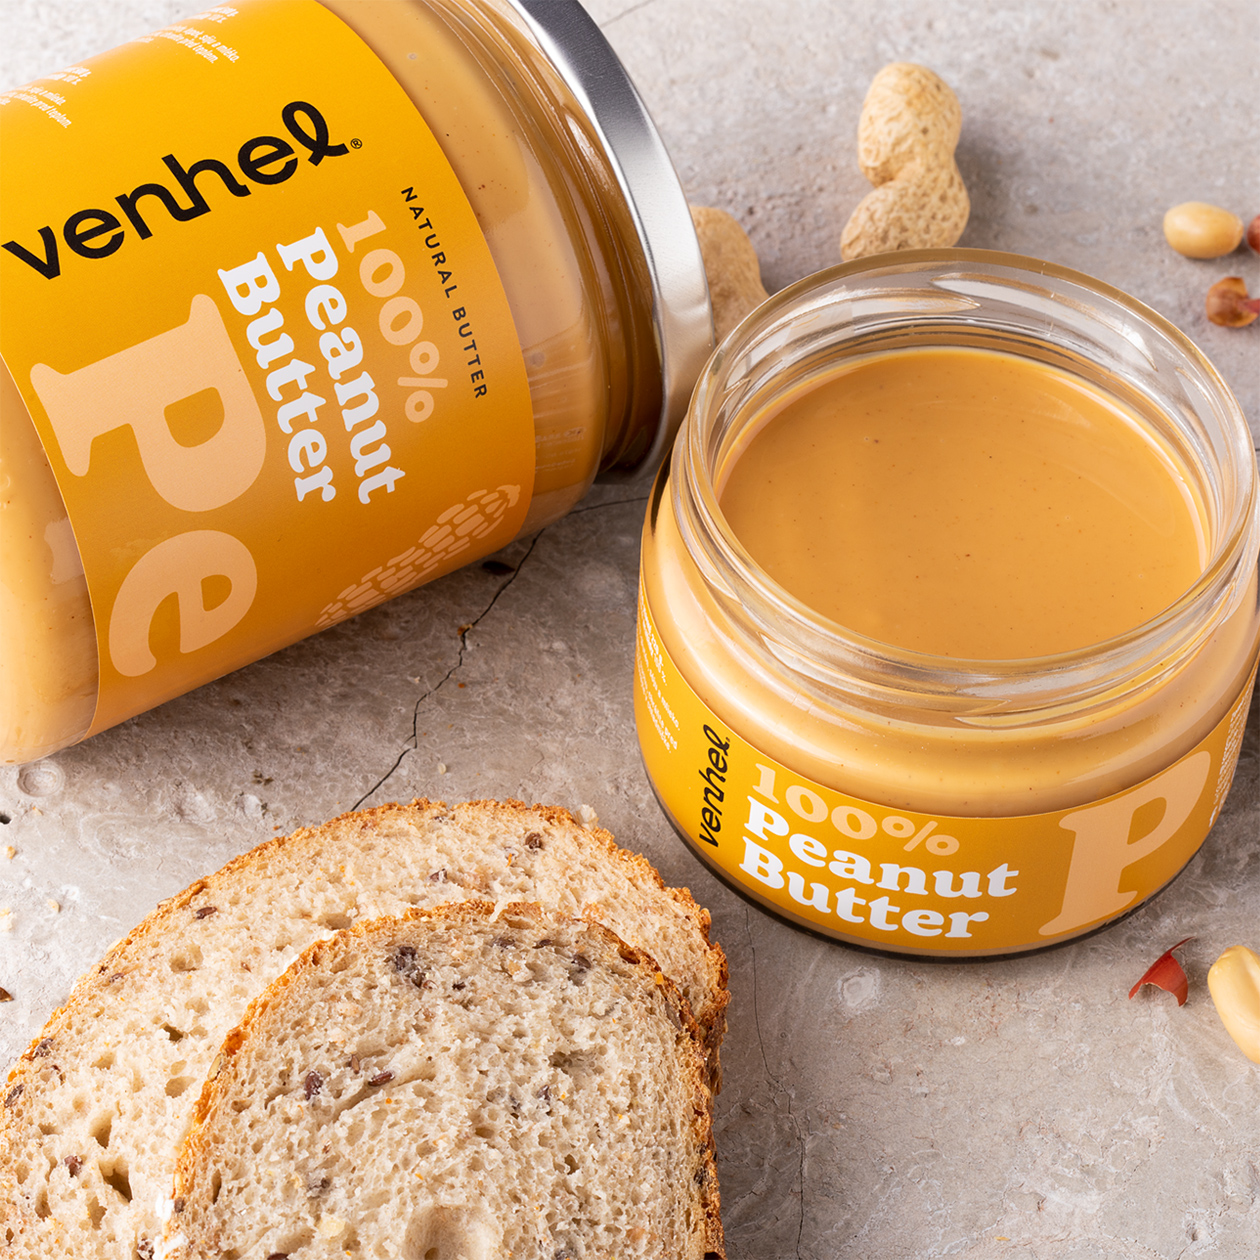 venhel packaging peanut butter